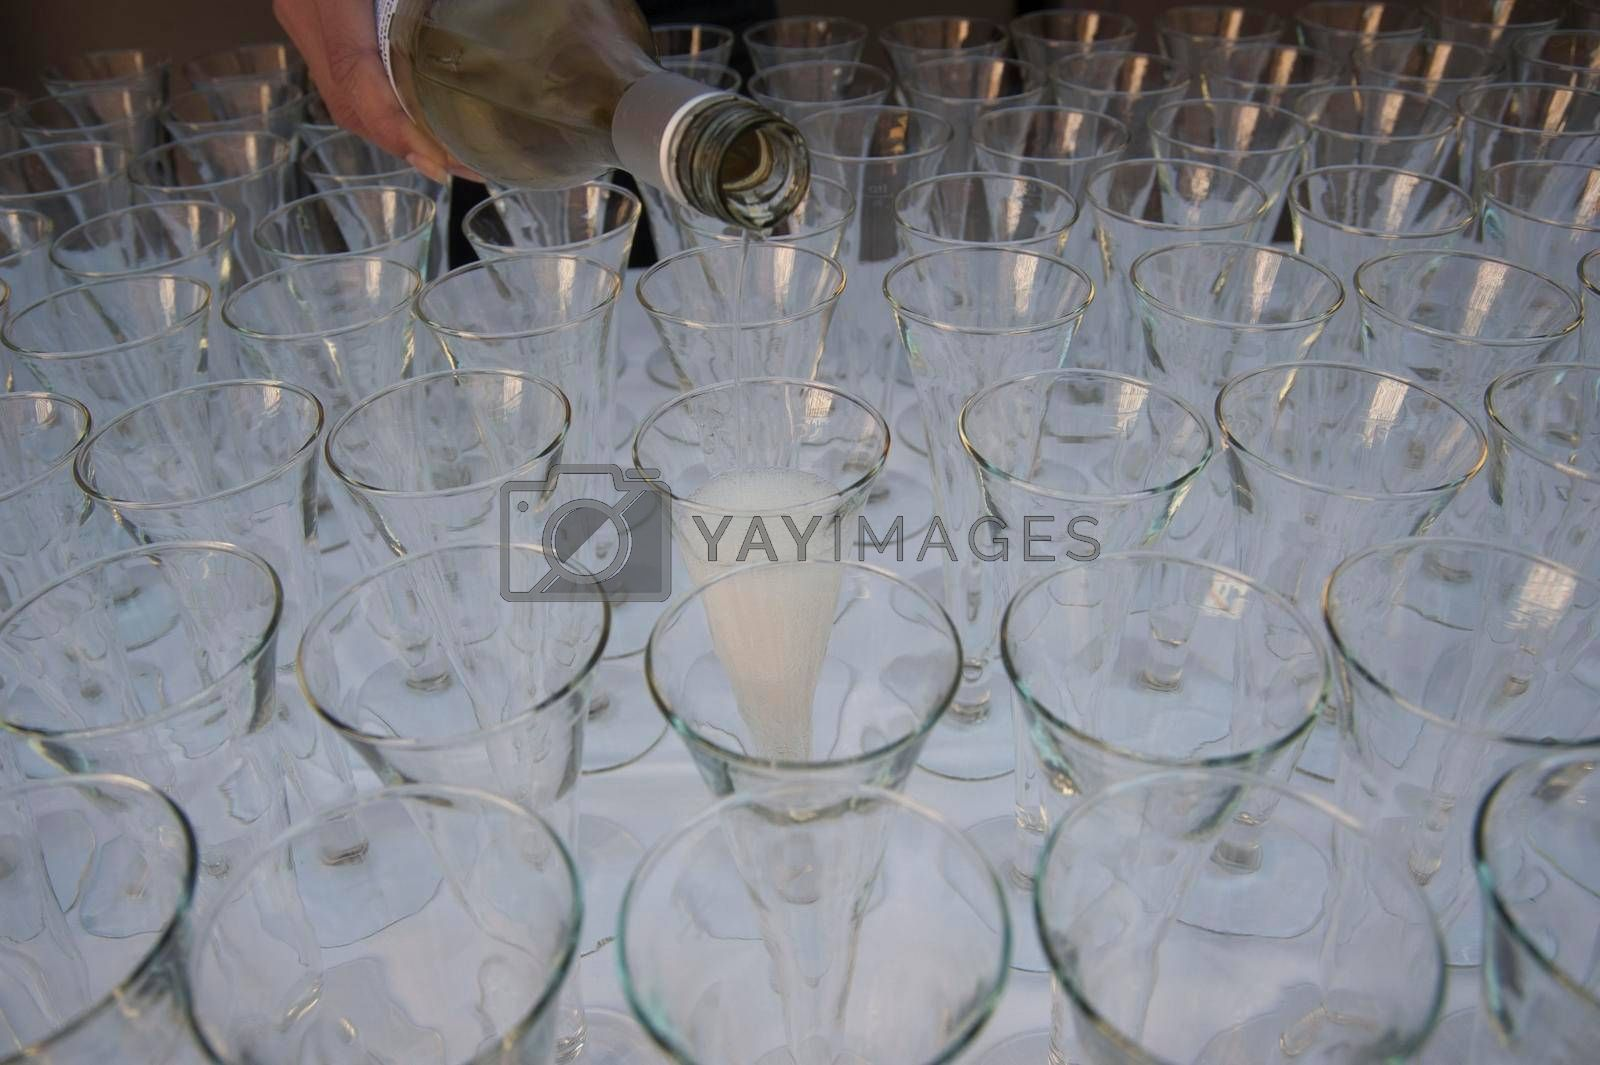 pouring champagne into champagne glasses, alcoholic beverage for festive occasions